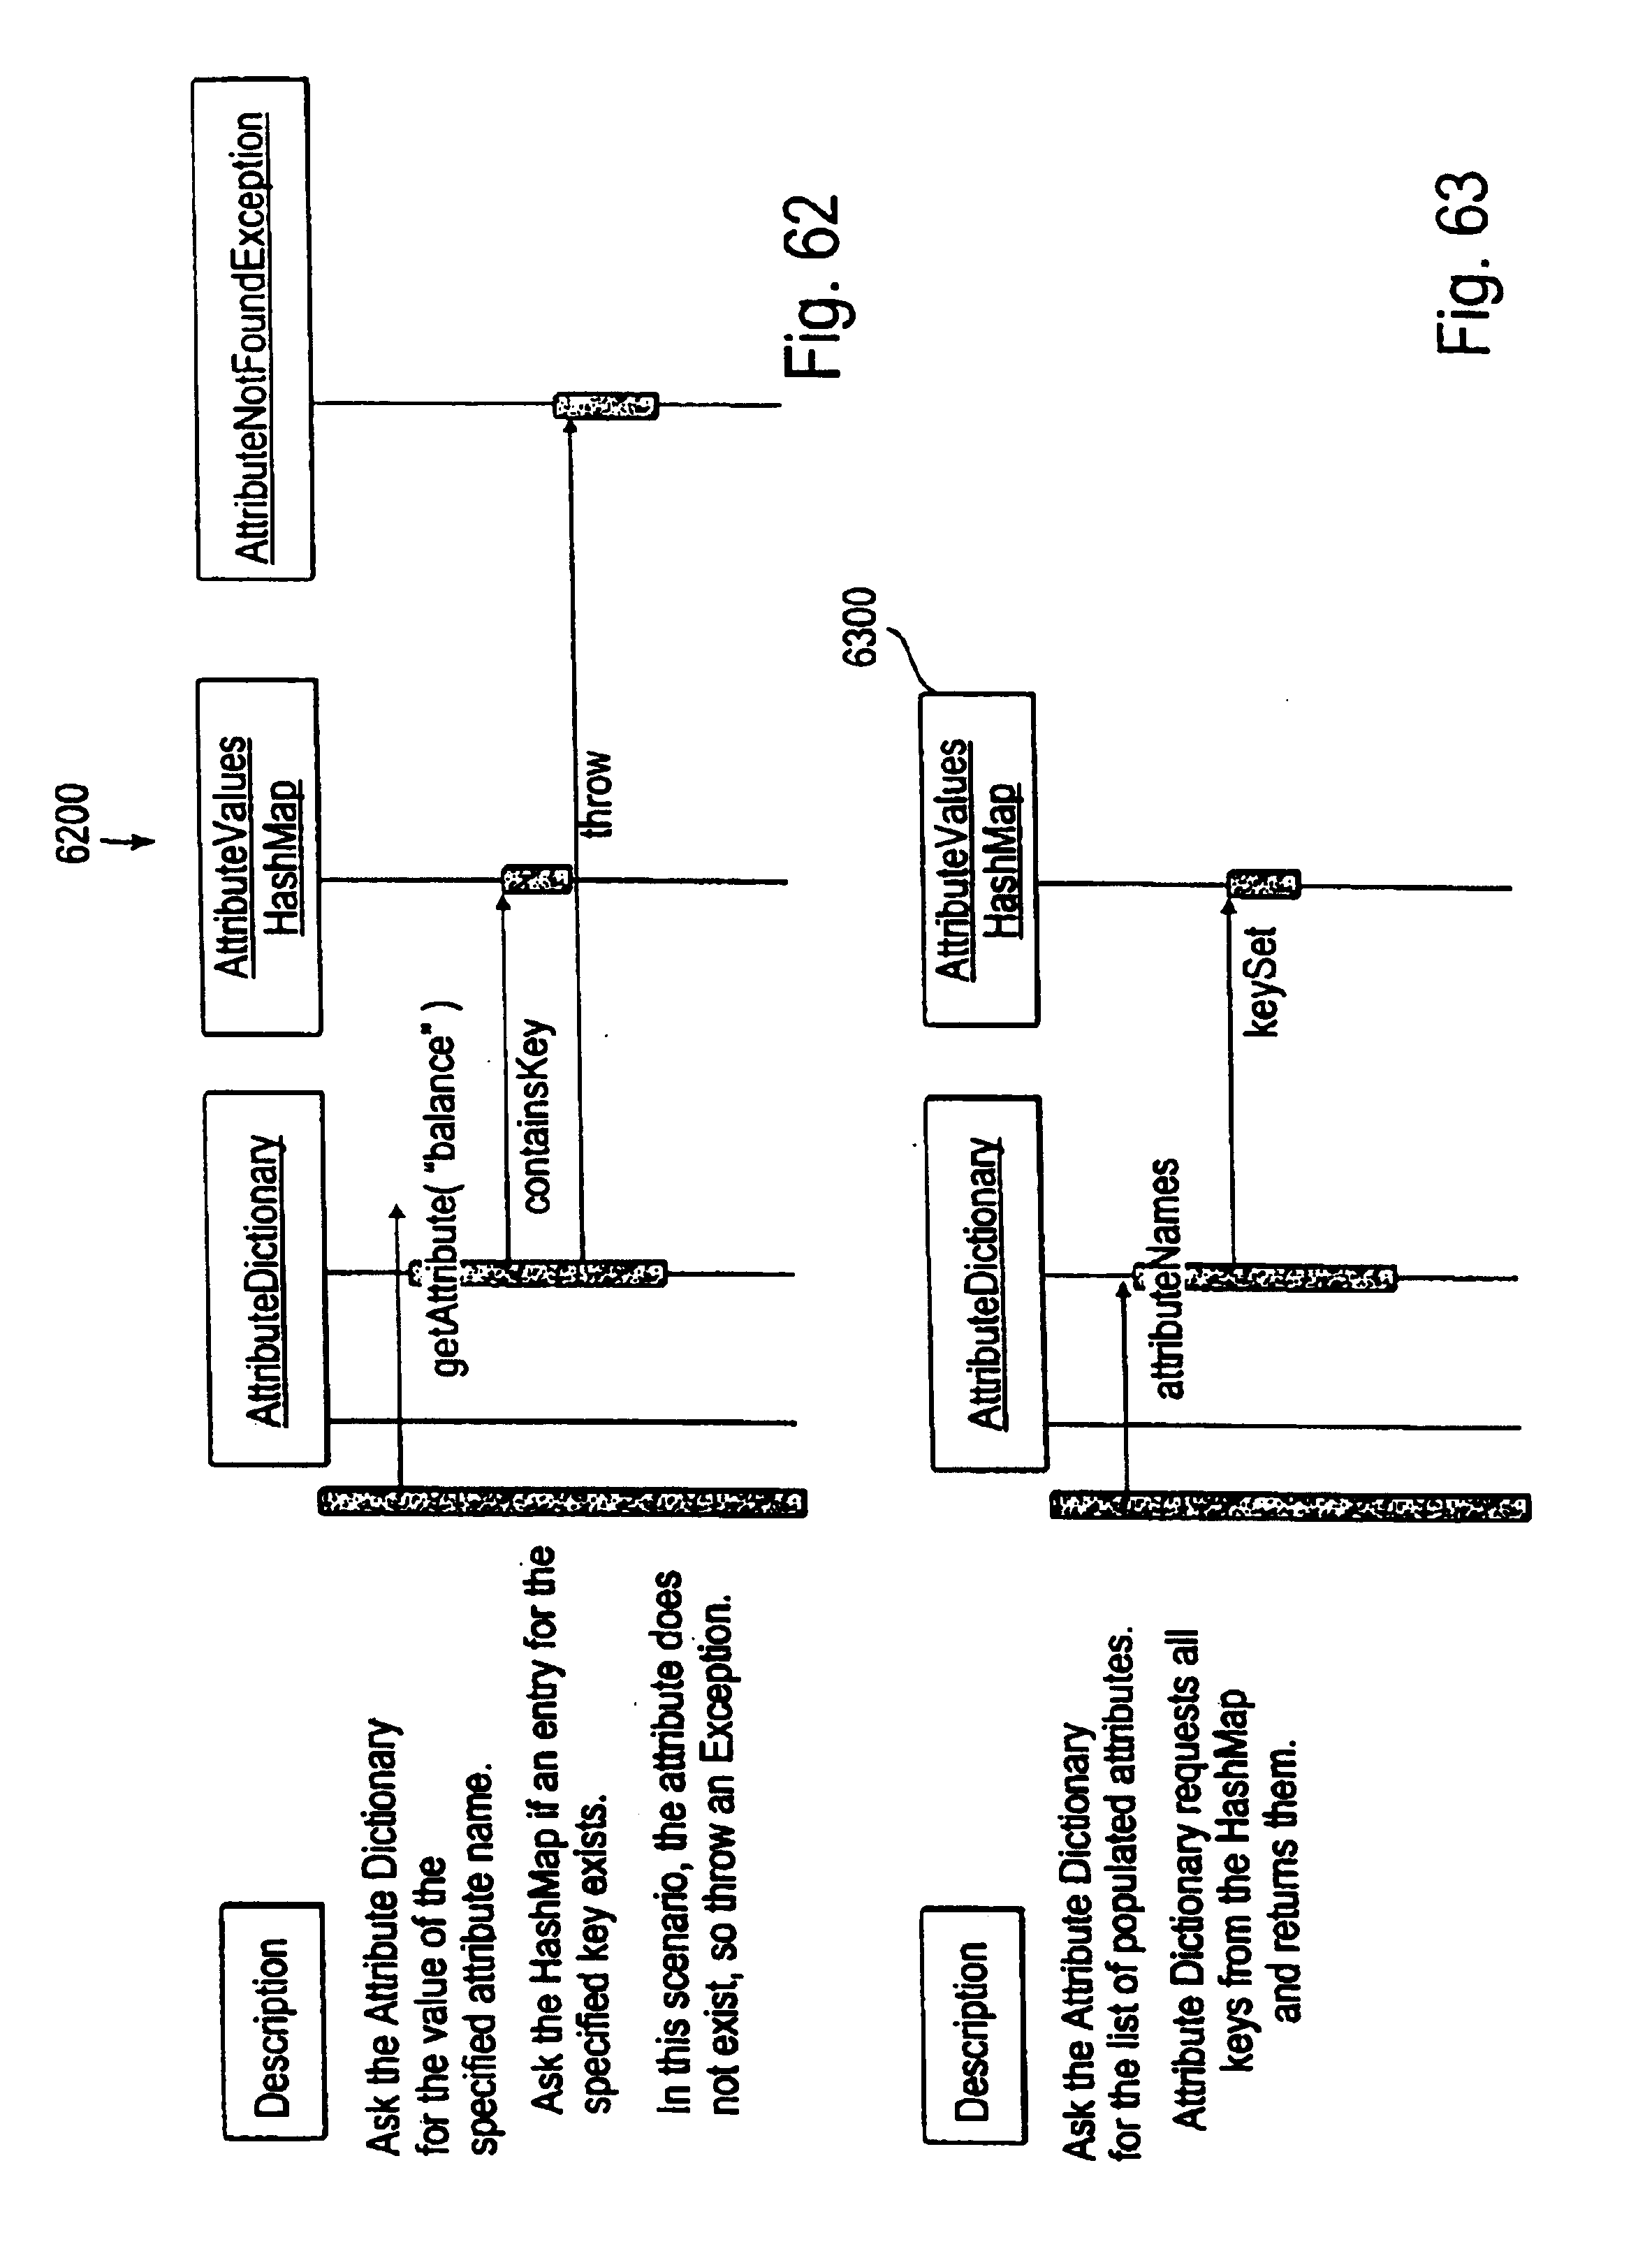 Patent Us 6742015 B1 Scout 800 Wiring Diagram On For Electronic Ignition Ih Images